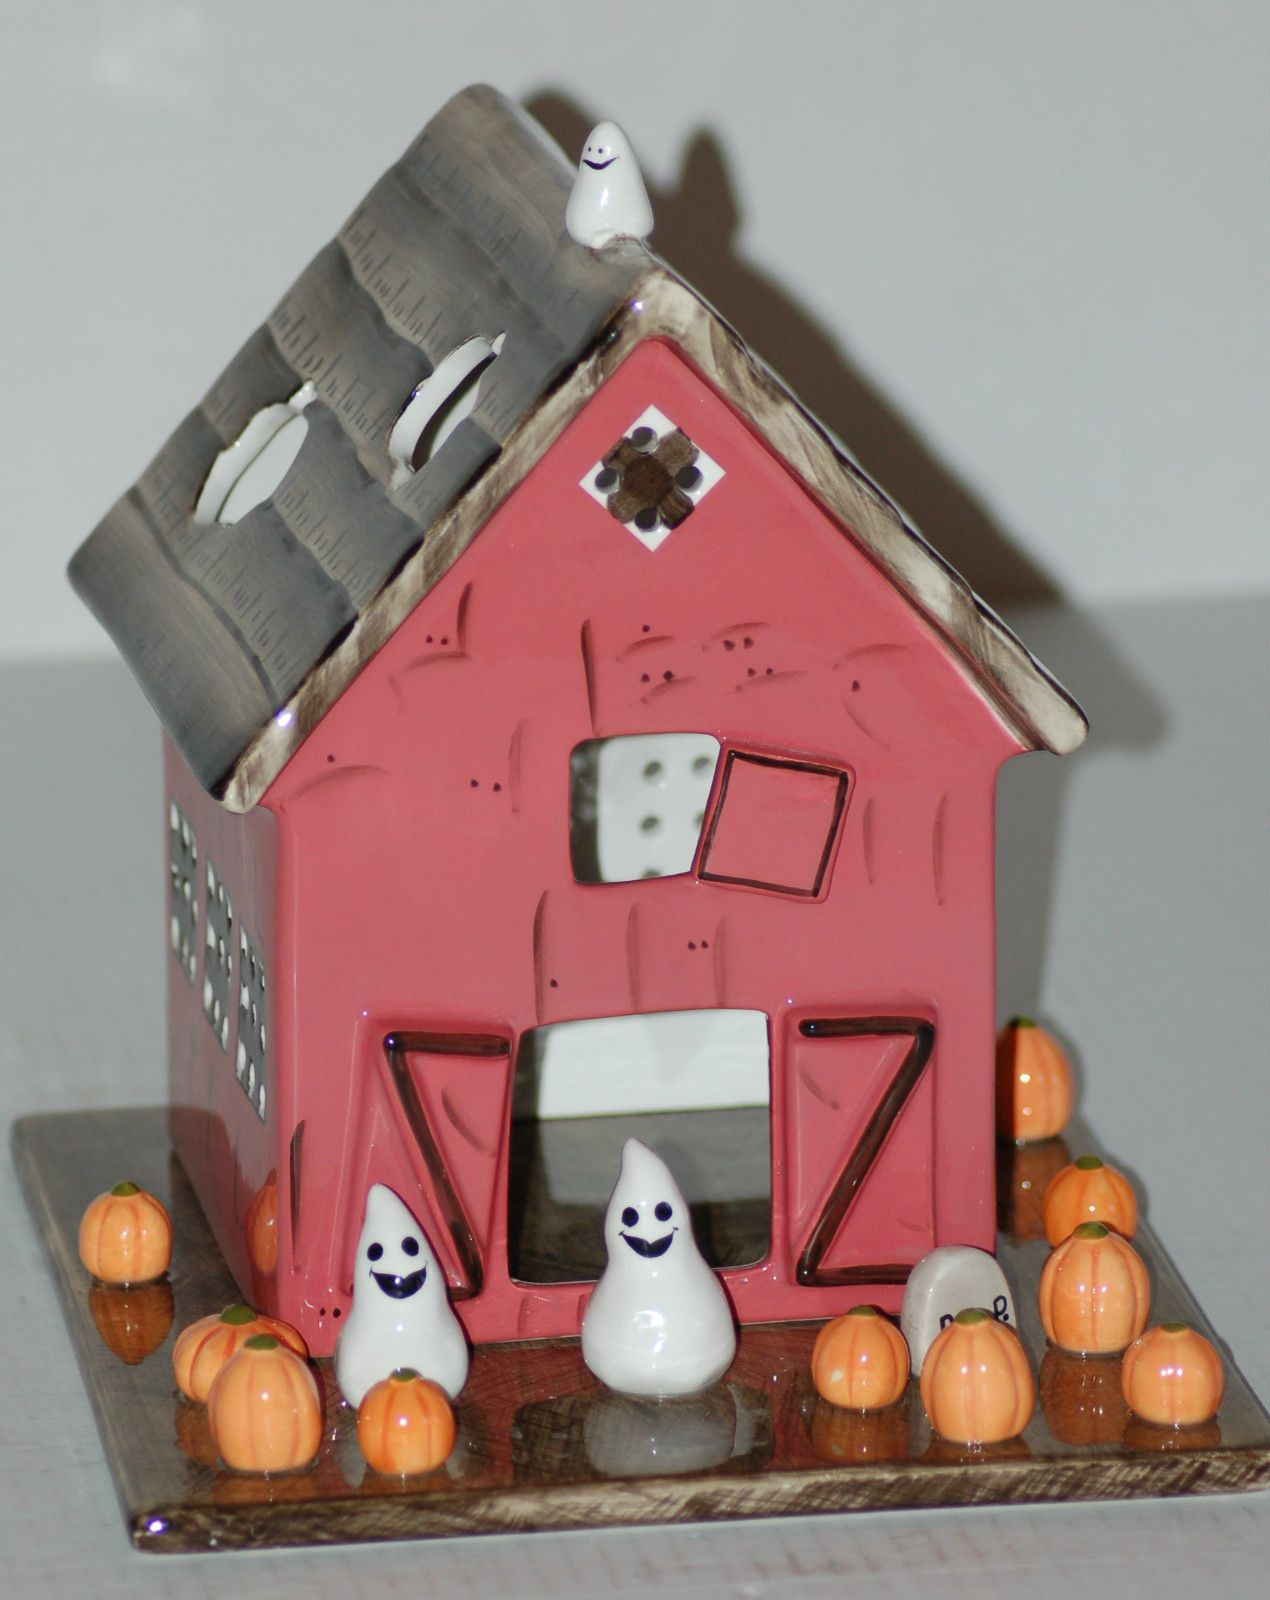 Bath & Body Works White Barn Candle Co Halloween House